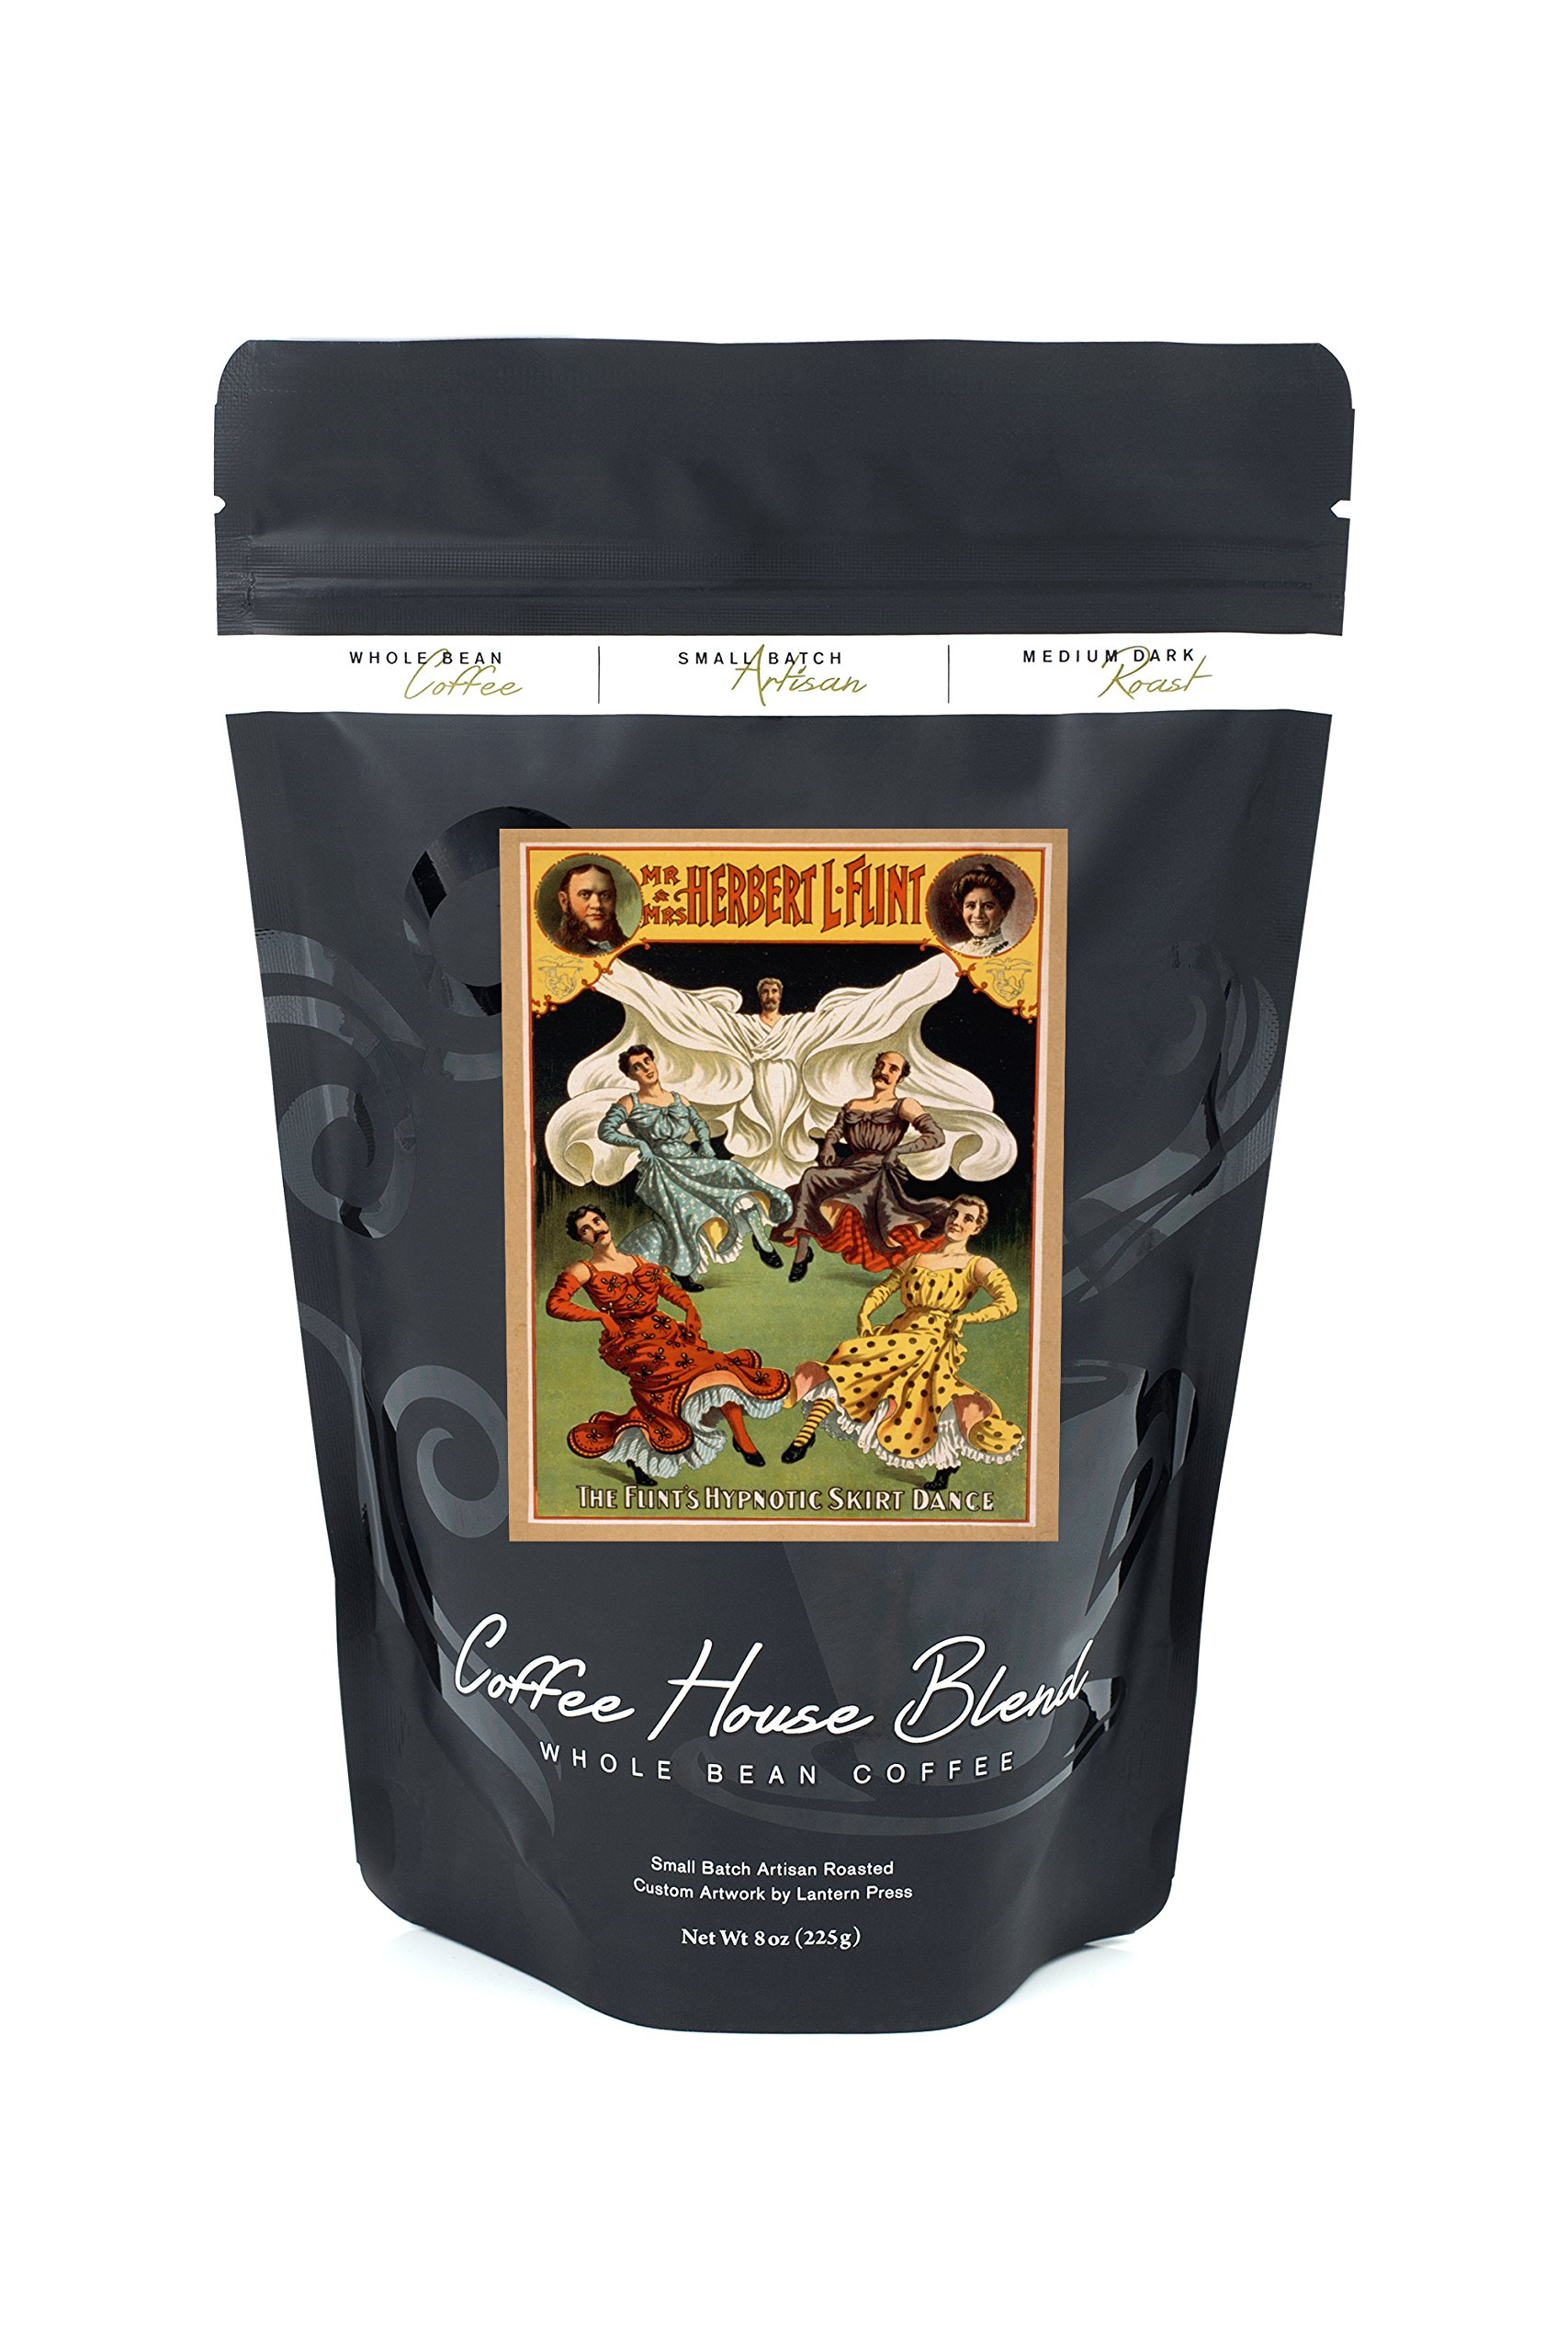 The Flints Hypnotic Skirt Dance Theatrical Poster (8oz Whole Bean Small Batch Artisan Coffee - Bold & Strong Medium Dark Roast w/ Artwork)